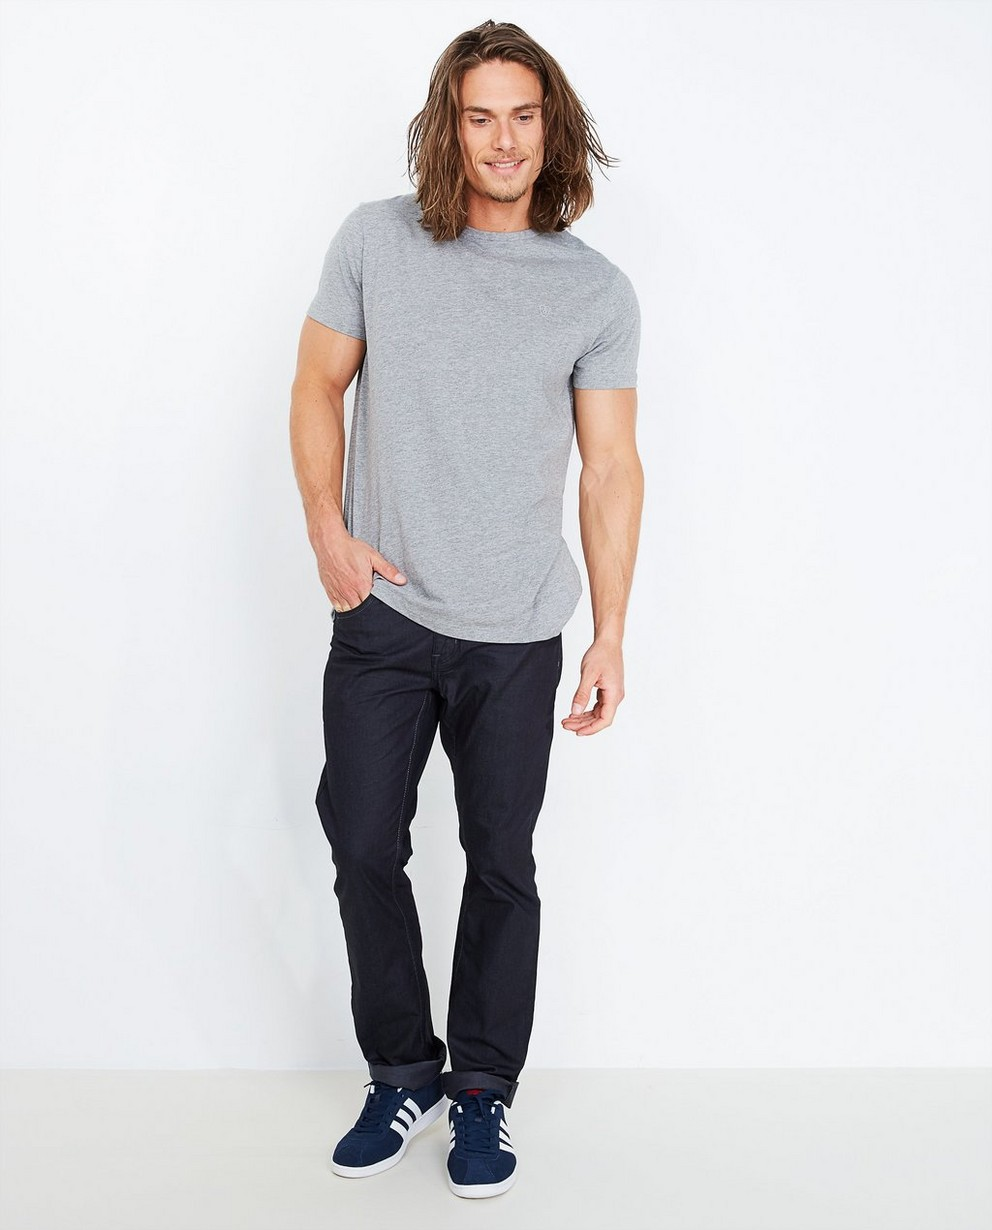 Jeans noir - fitted straight - Quarterback